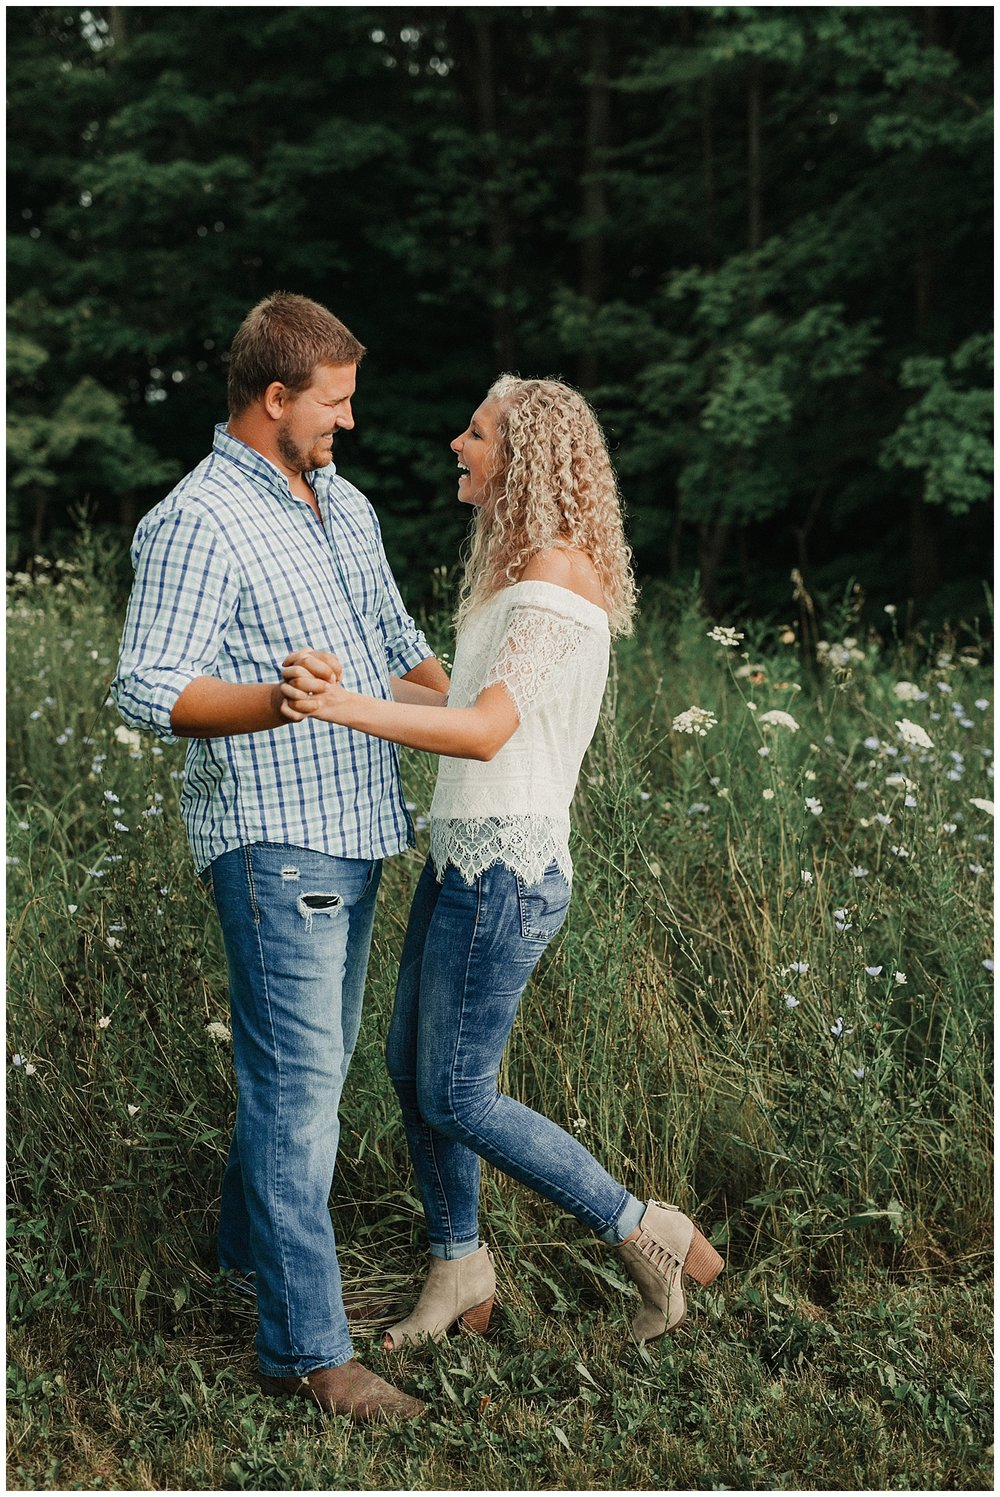 lindybeth photography - engagement pictures - nikki dayton-181.jpg